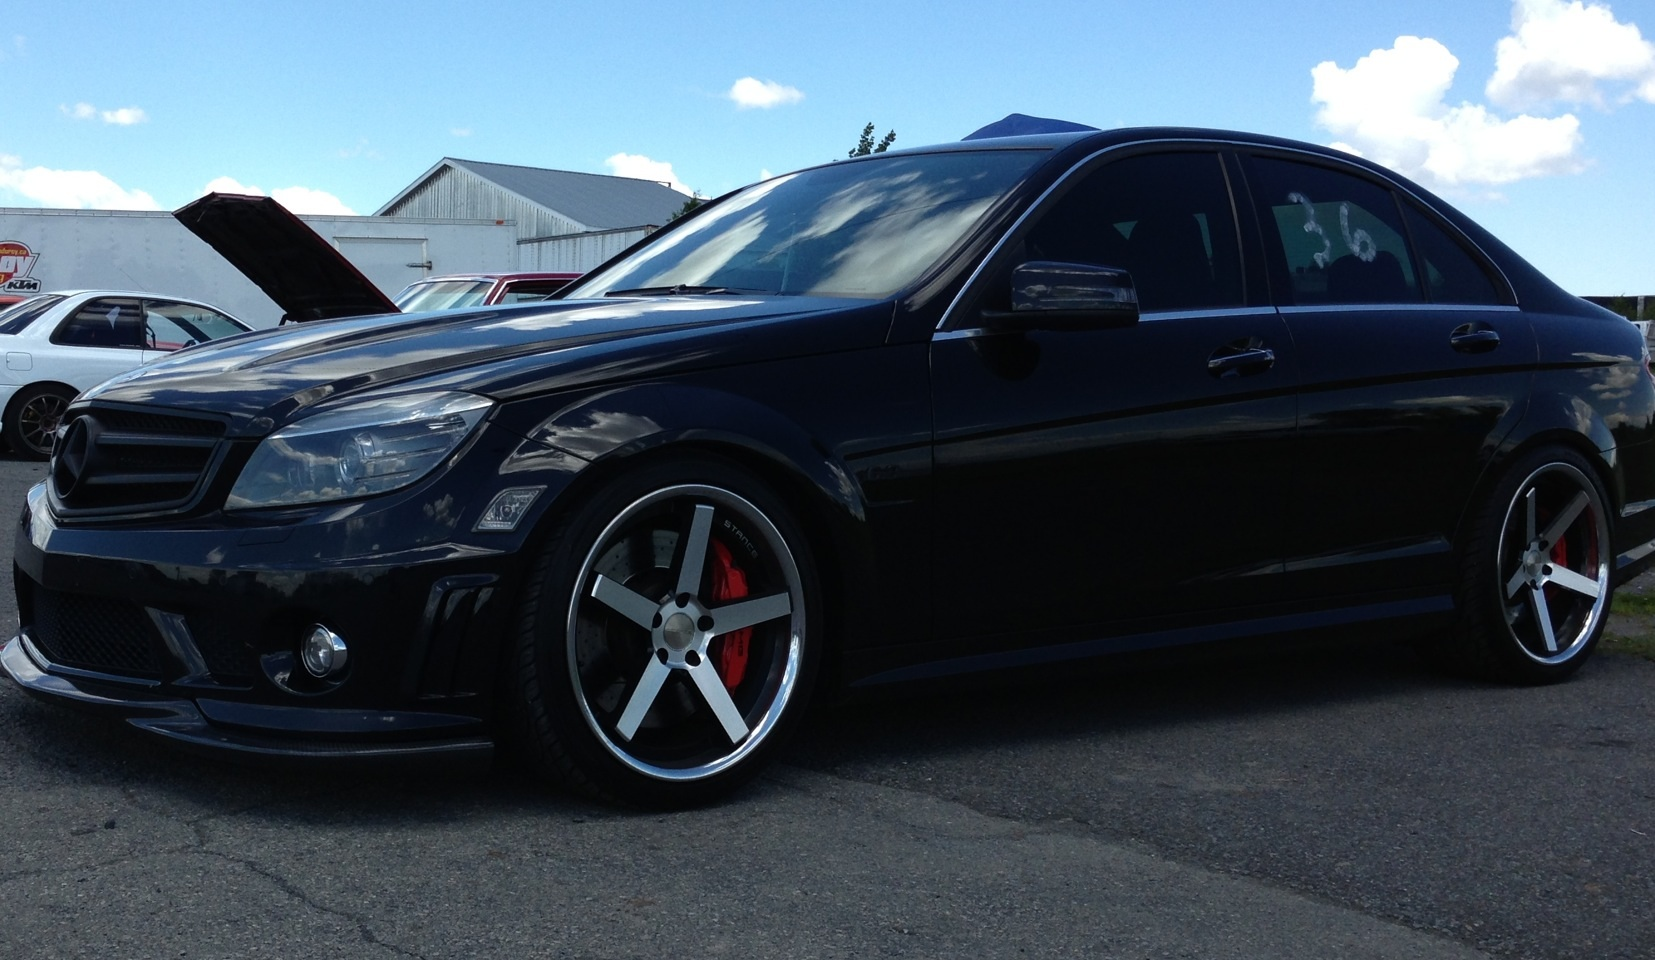 Stock 2010 mercedes benz c63 amg p31 1 4 mile drag racing for Mercedes benz c63 amg 2010